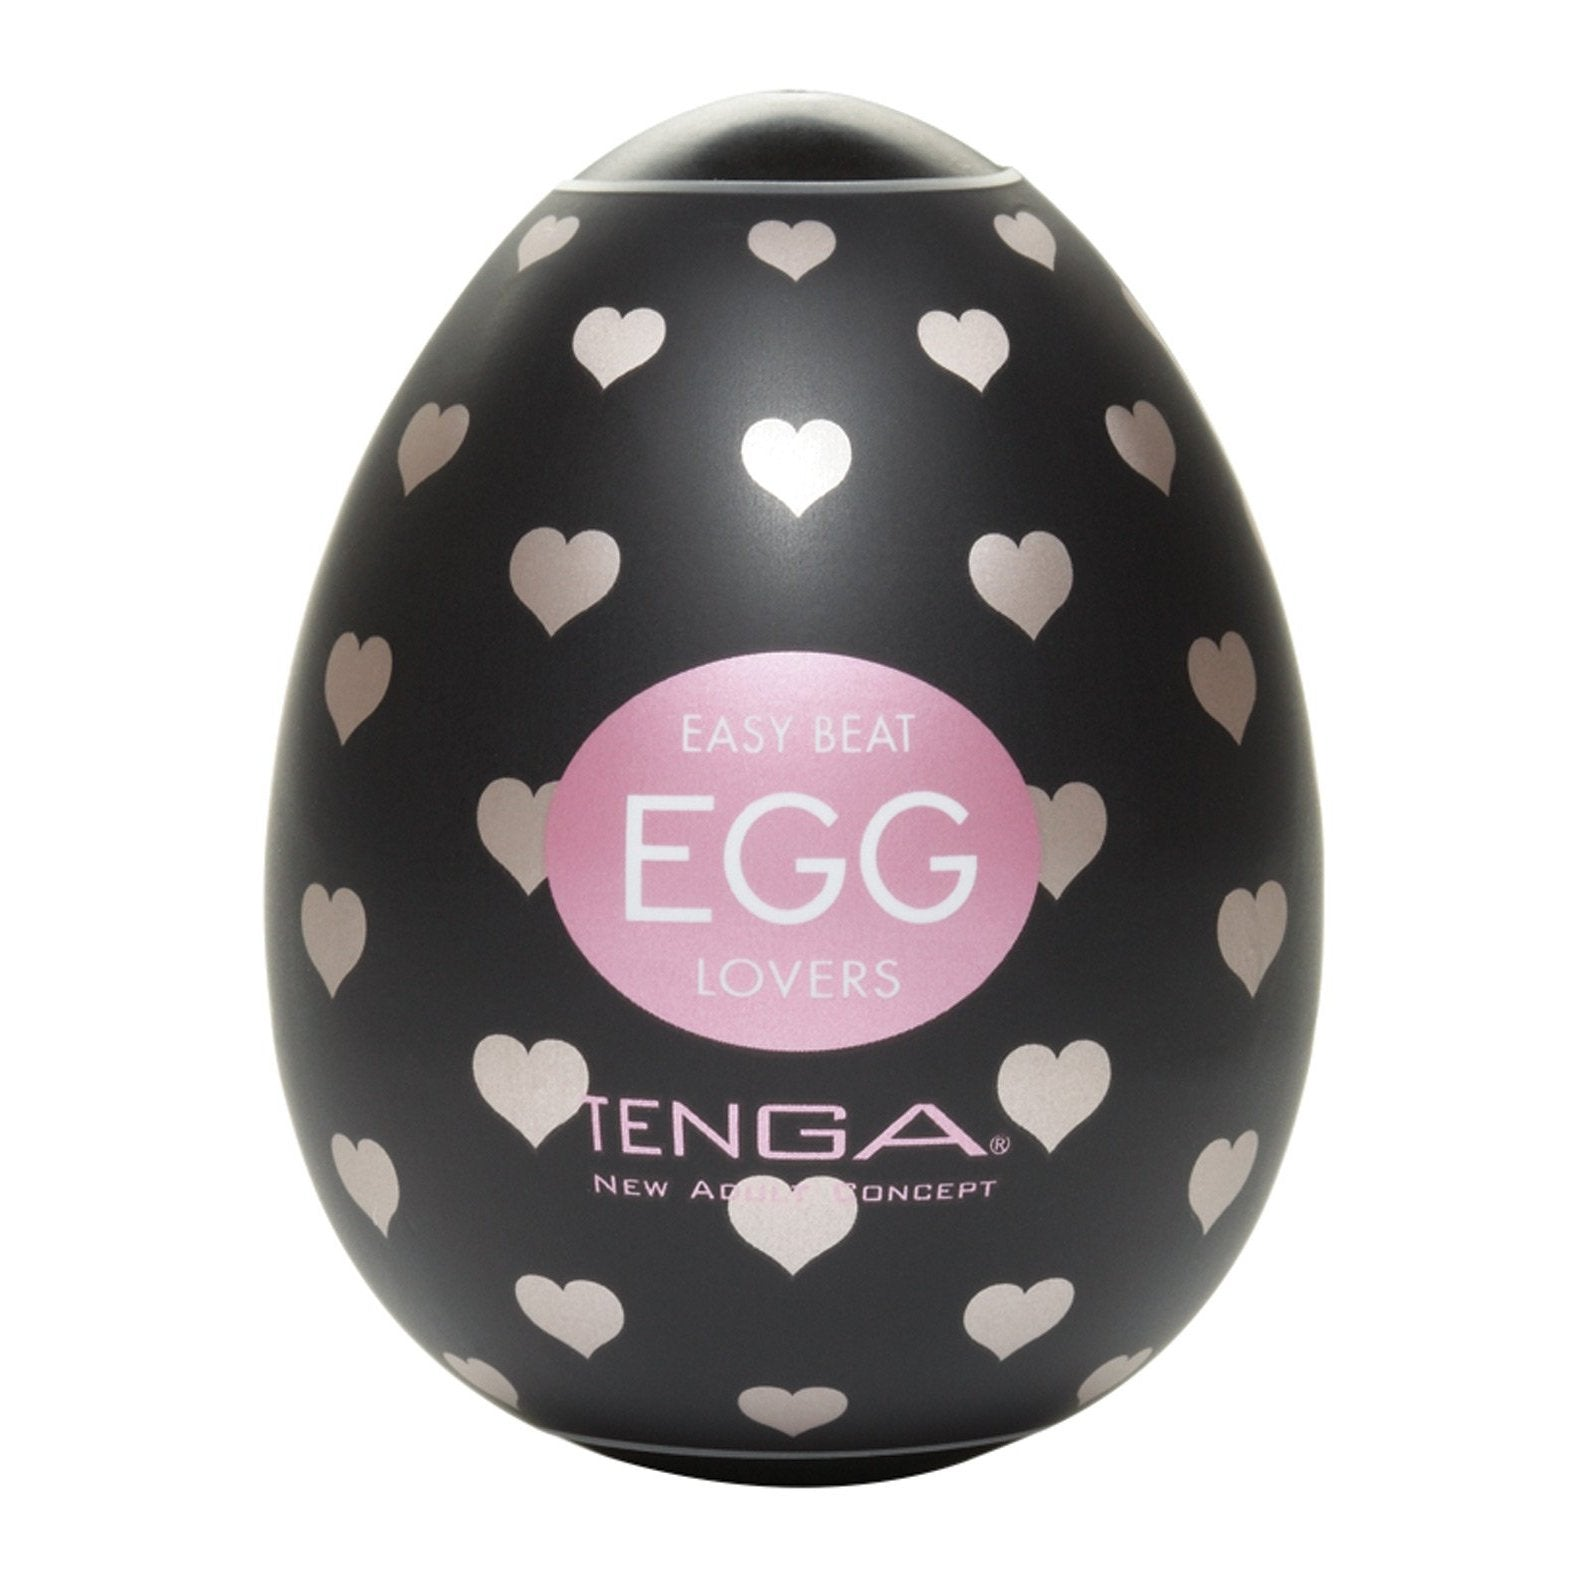 Tenga Egg - Lovers - Gay Men's Sex Toys - Adam's Toy Box